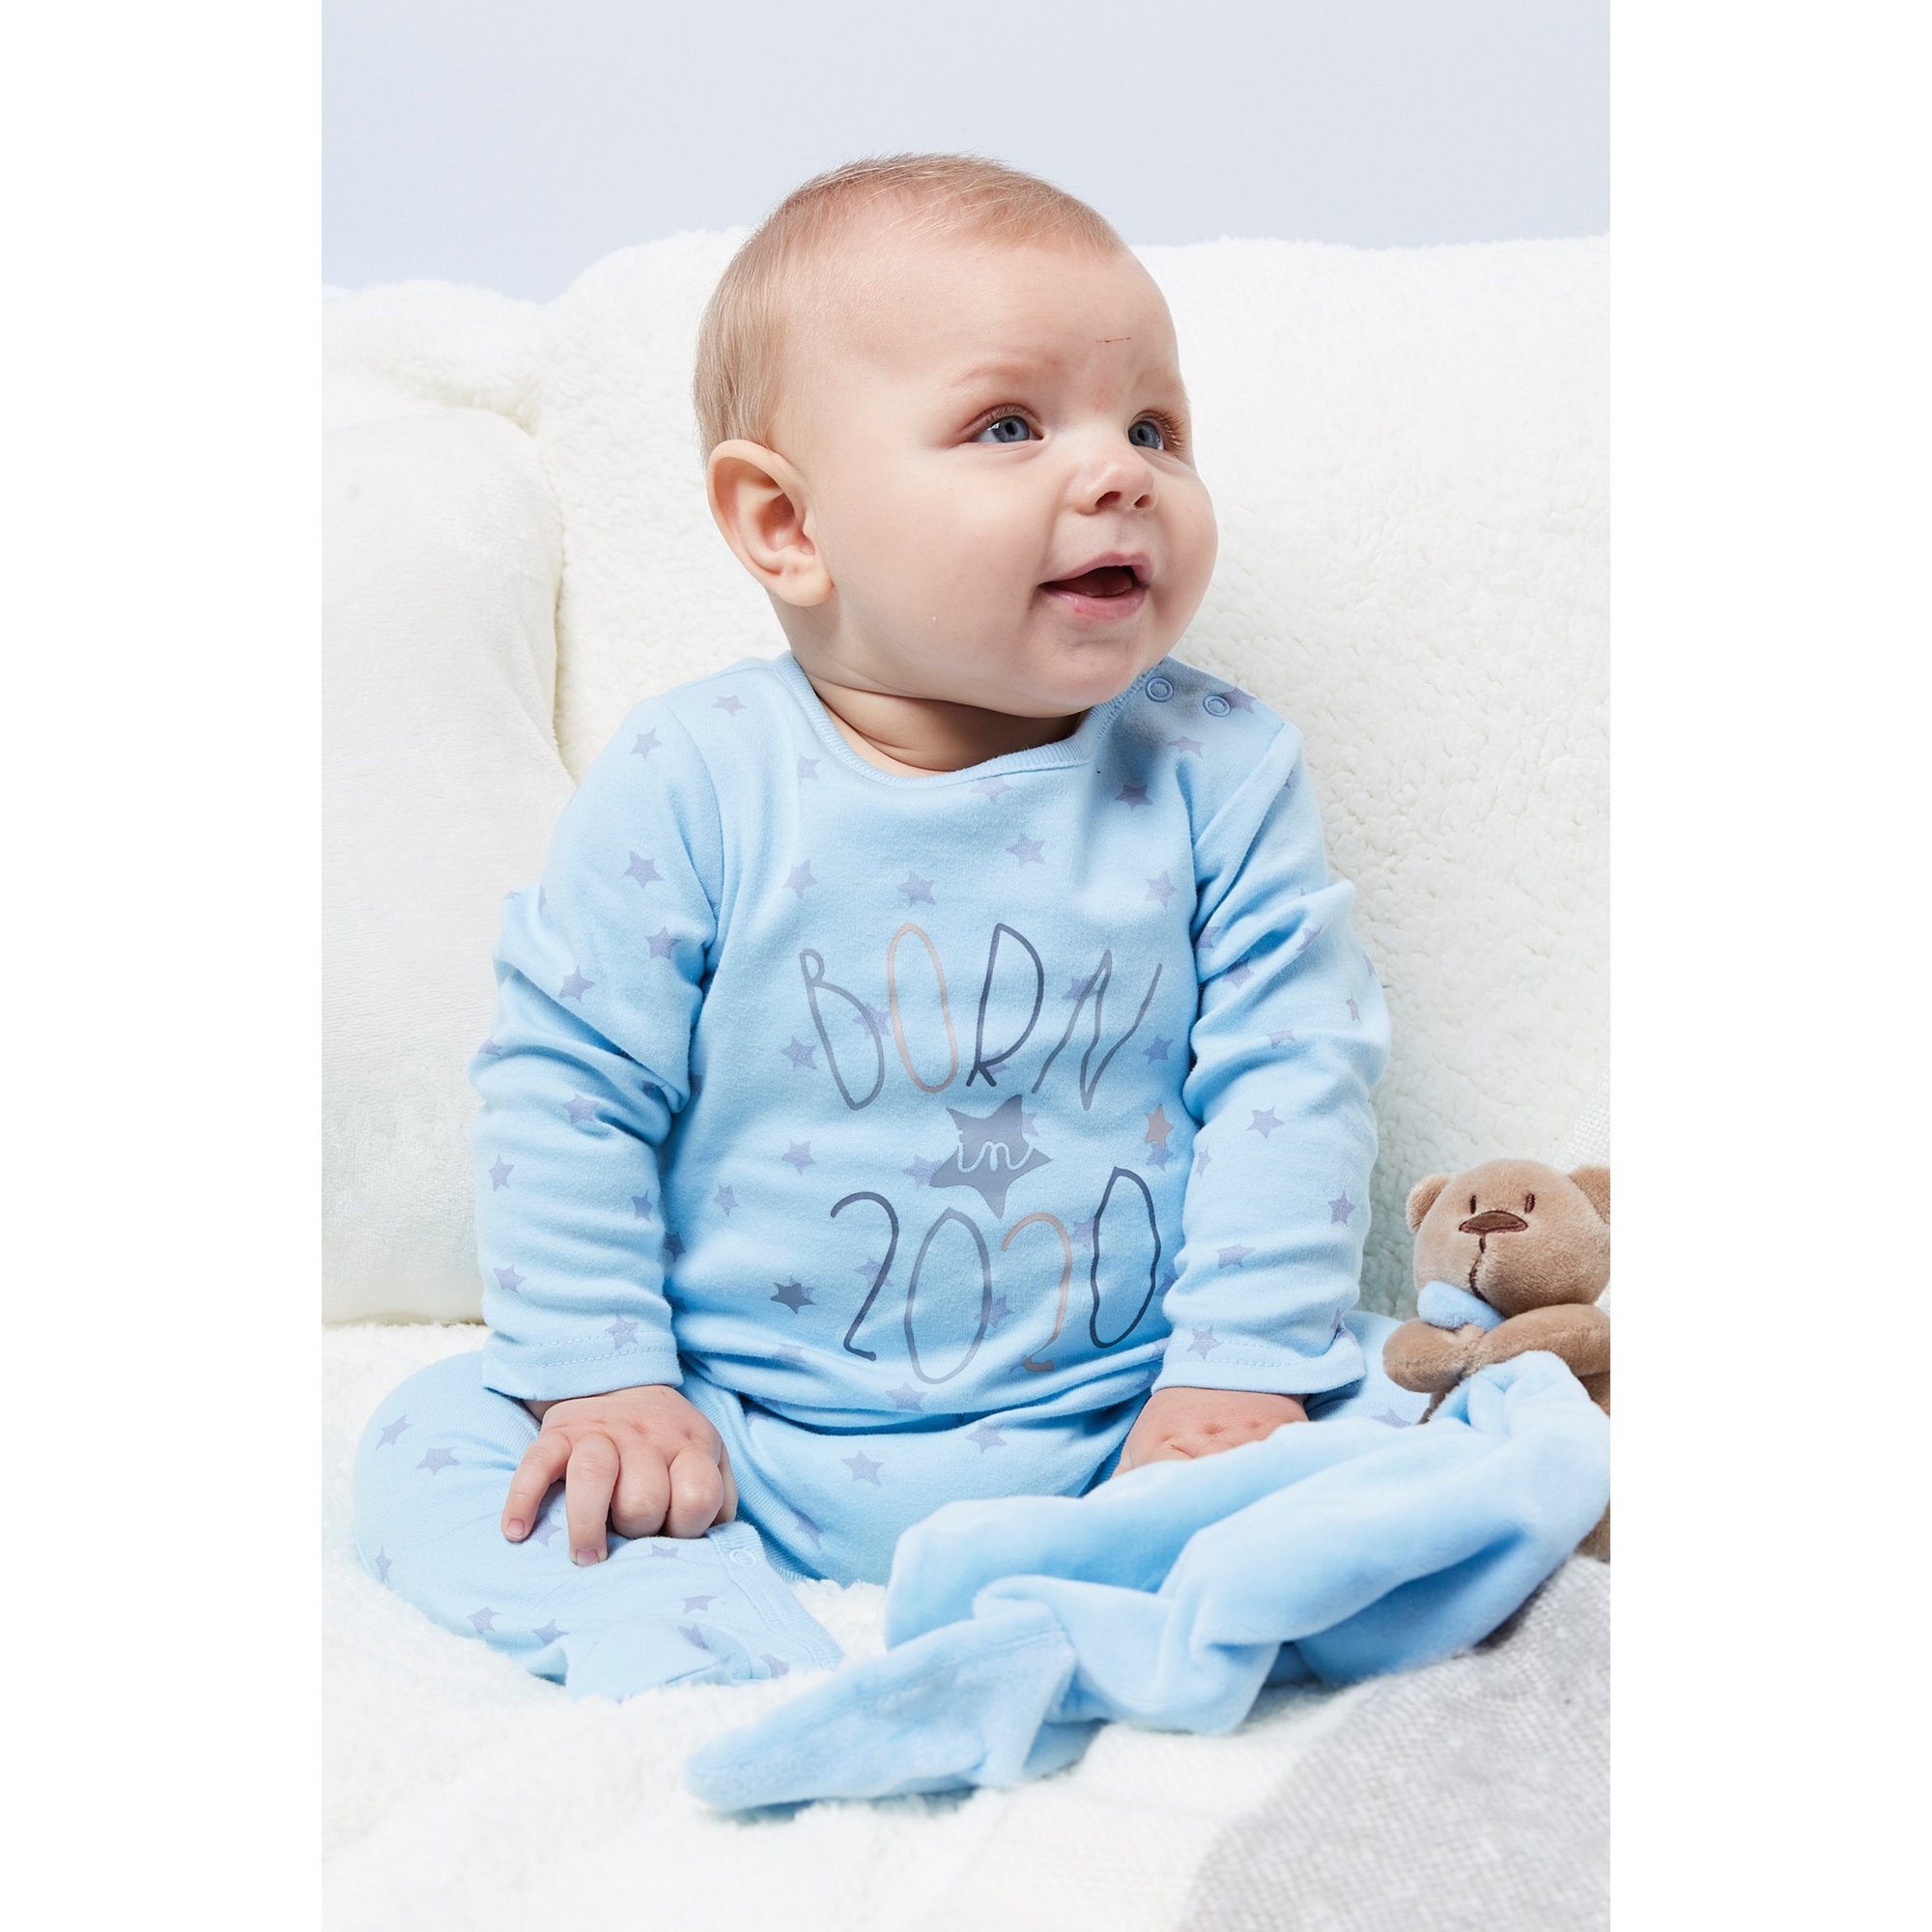 Image of Baby Born in 2020 Blue Sleepsuit with Comforter